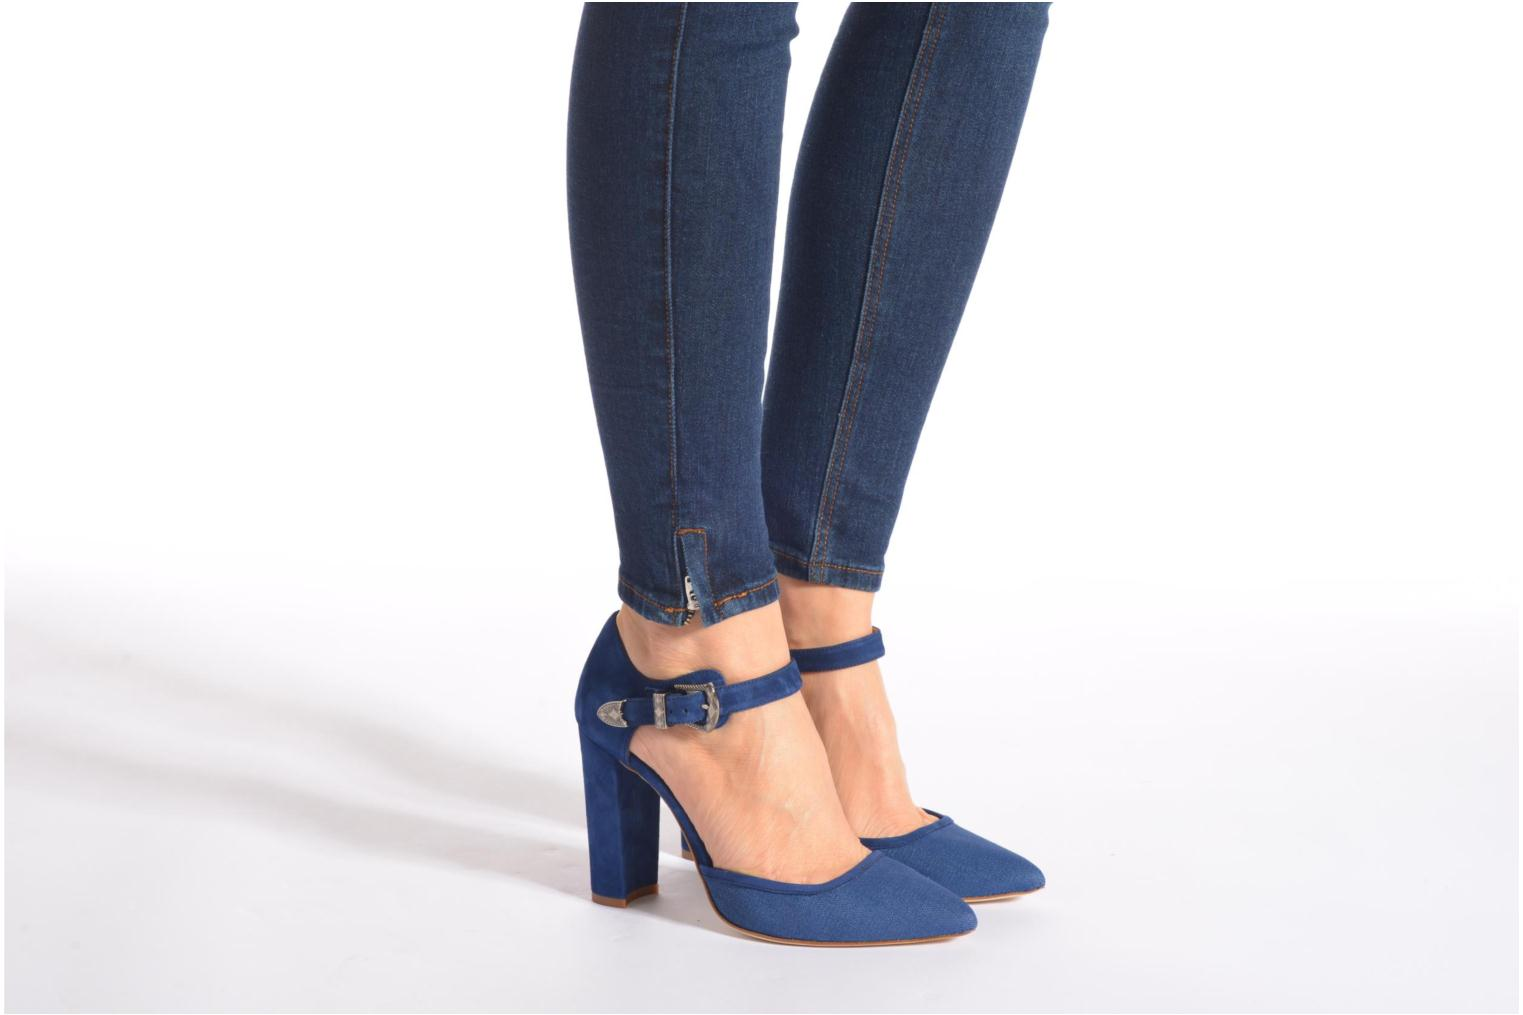 Western Fever #4 Jeans prin + Ante indico